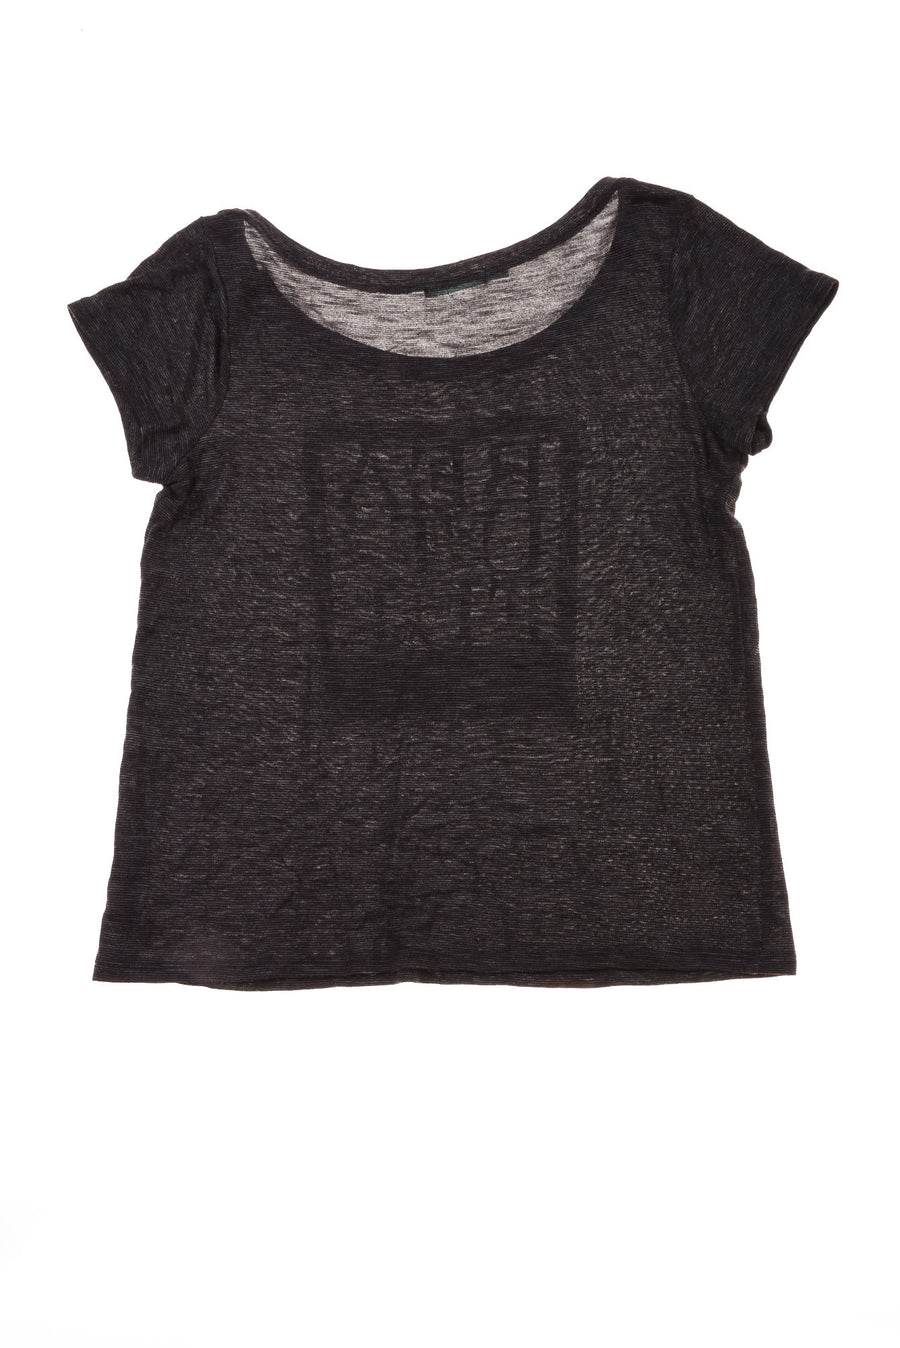 Women's Top By Maurices